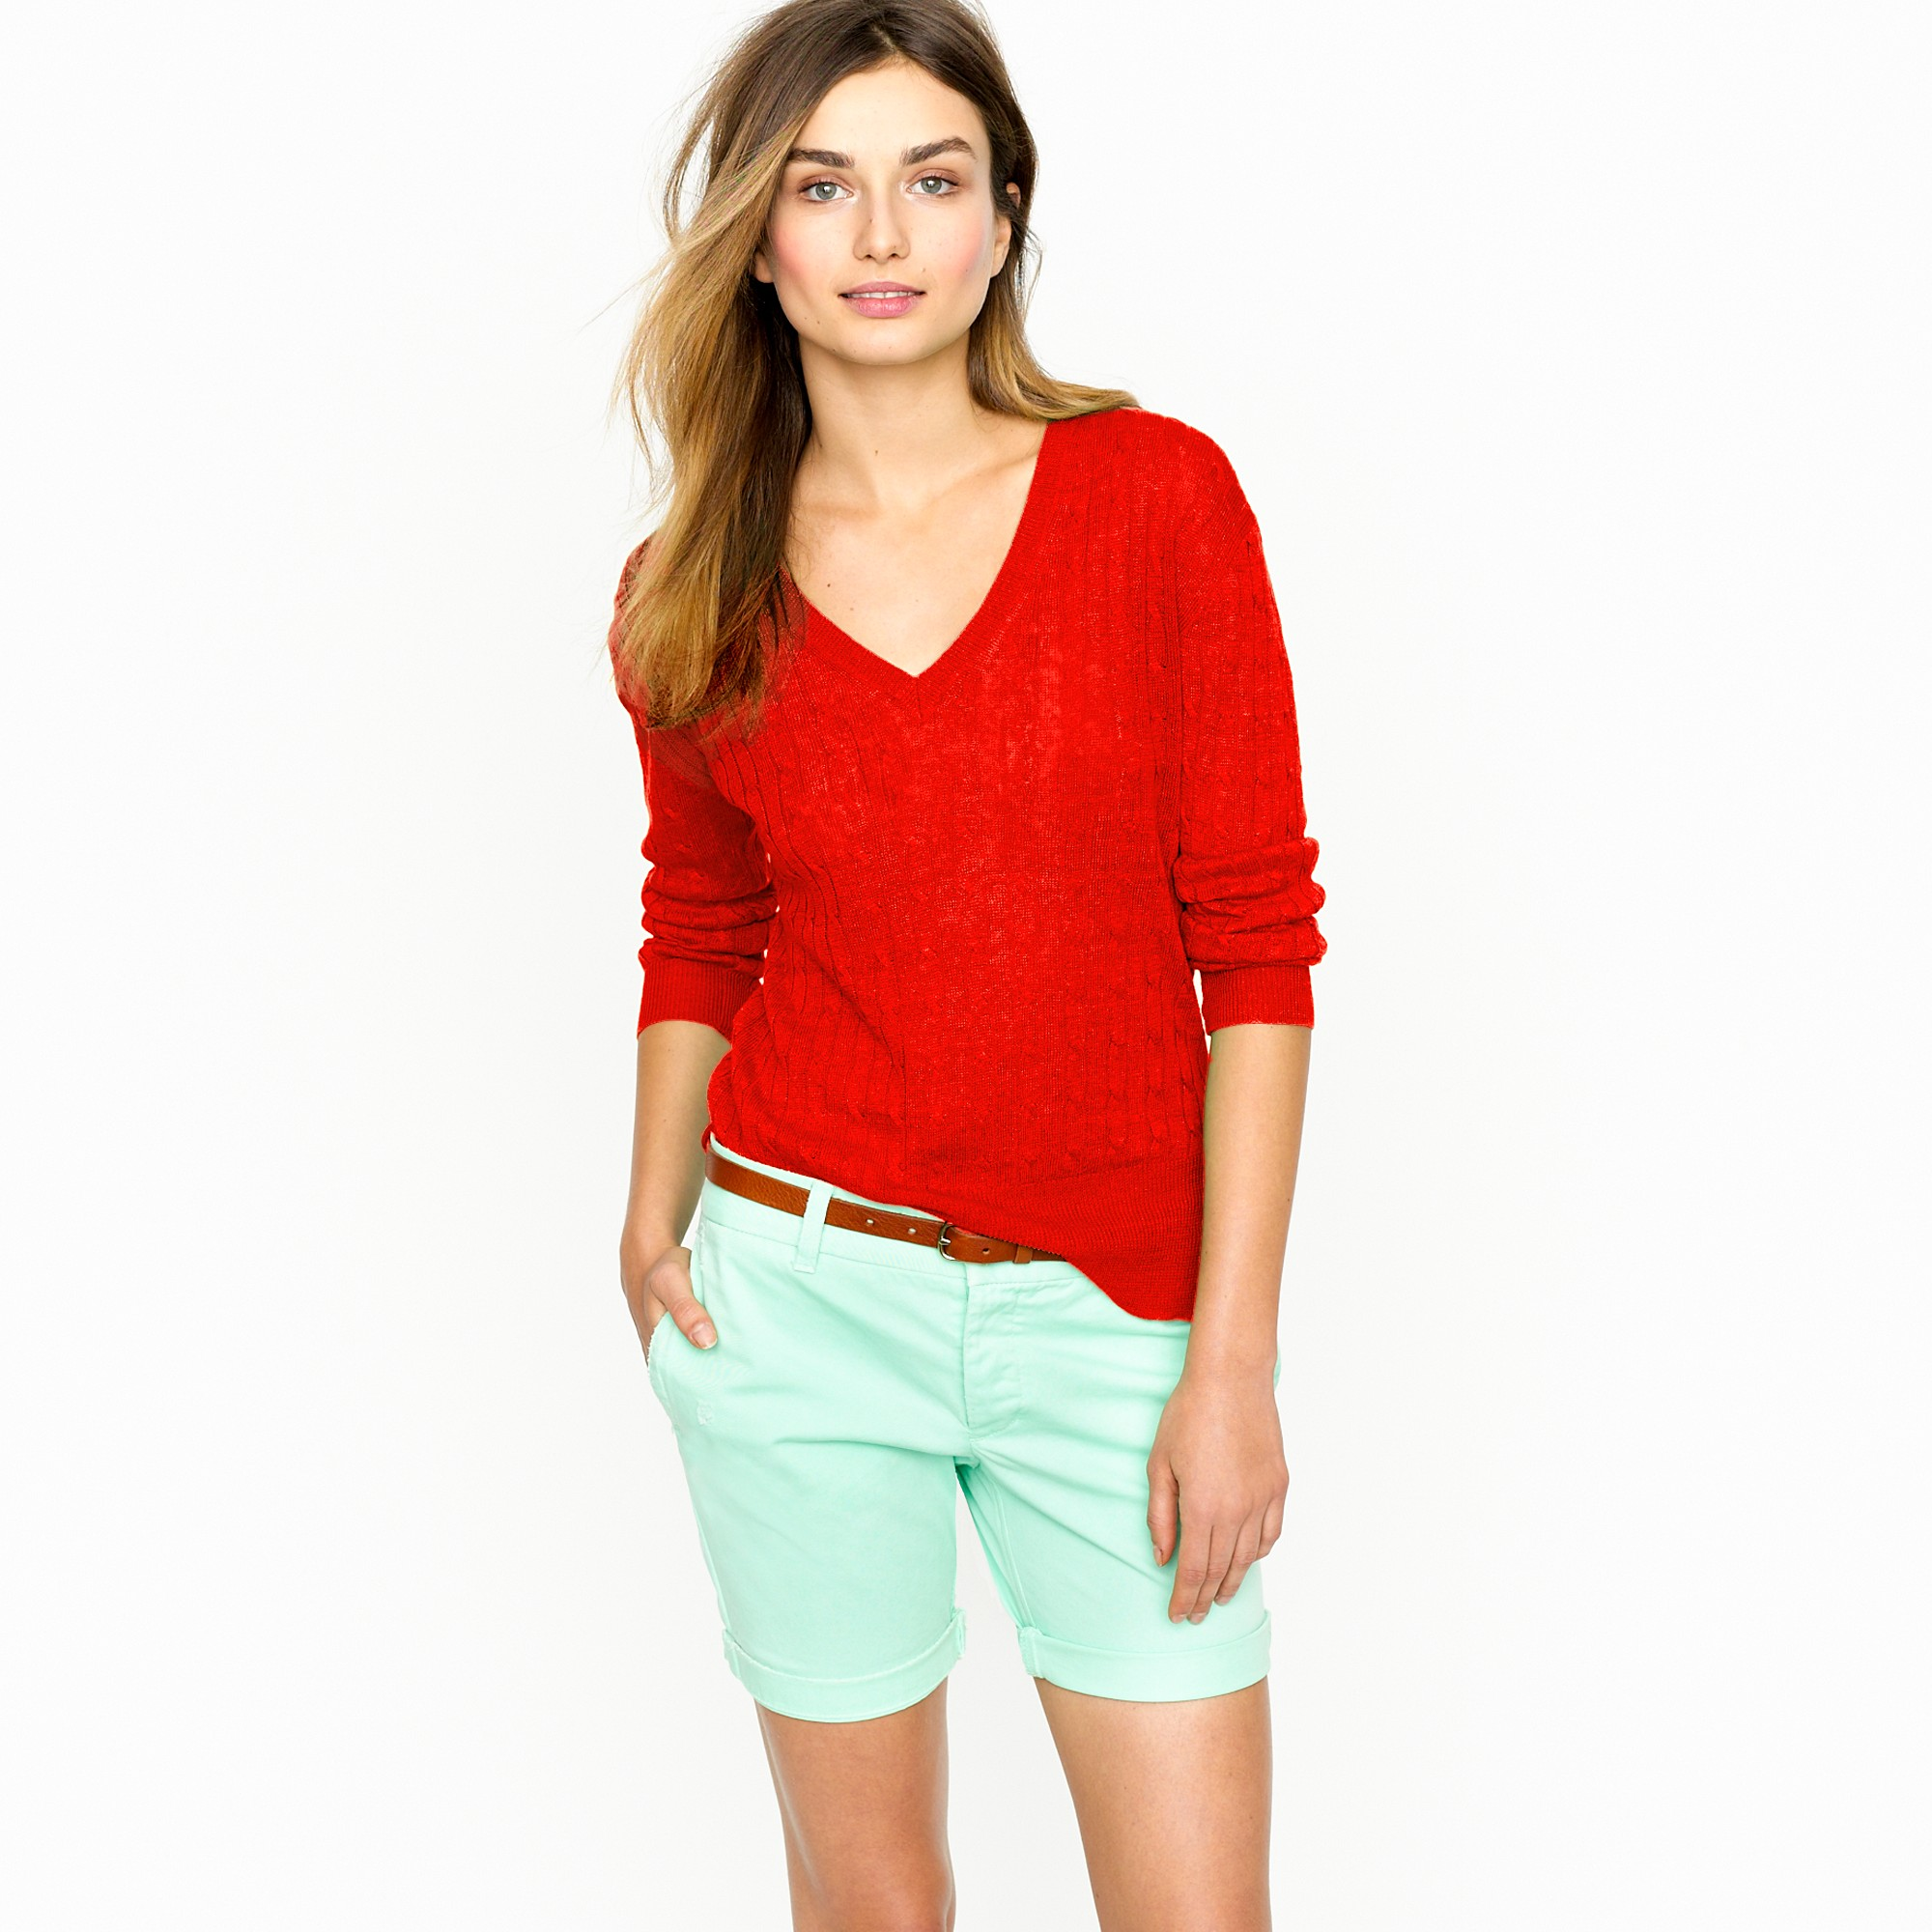 J.crew Linen V-neck Cable-knit Sweater in Red | Lyst